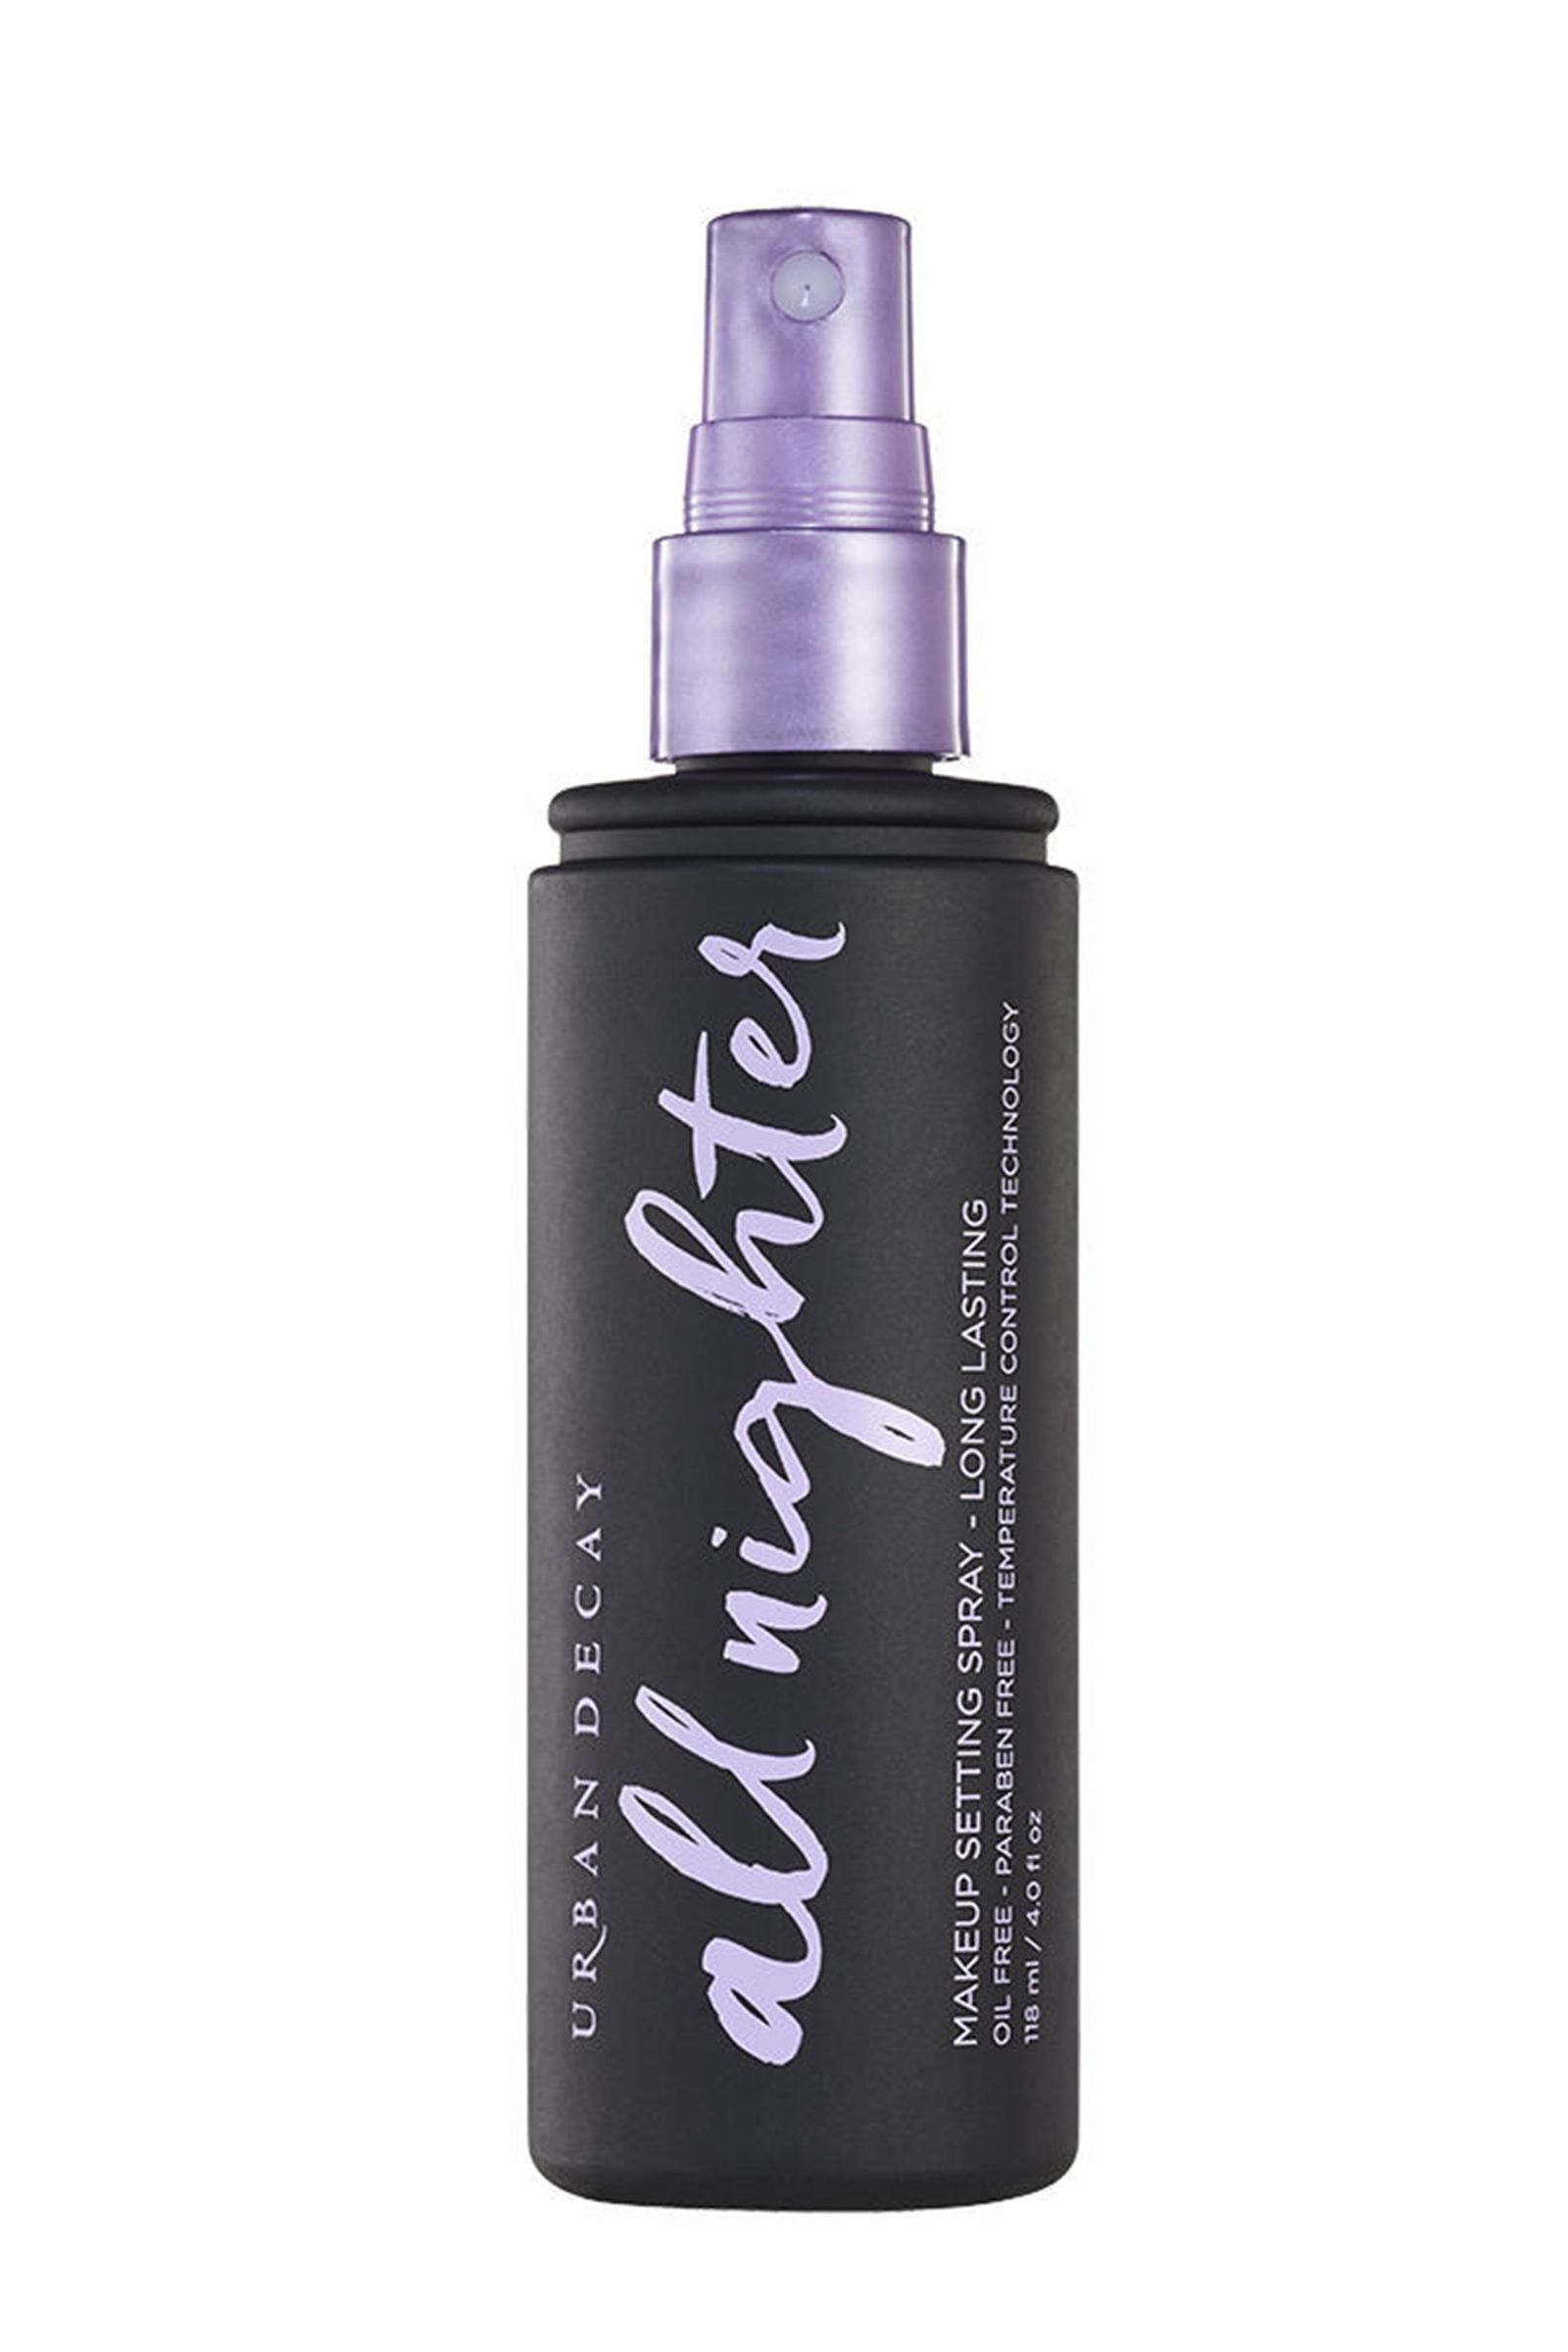 Mist with Coconut Water Makeup setting spray, Makeup